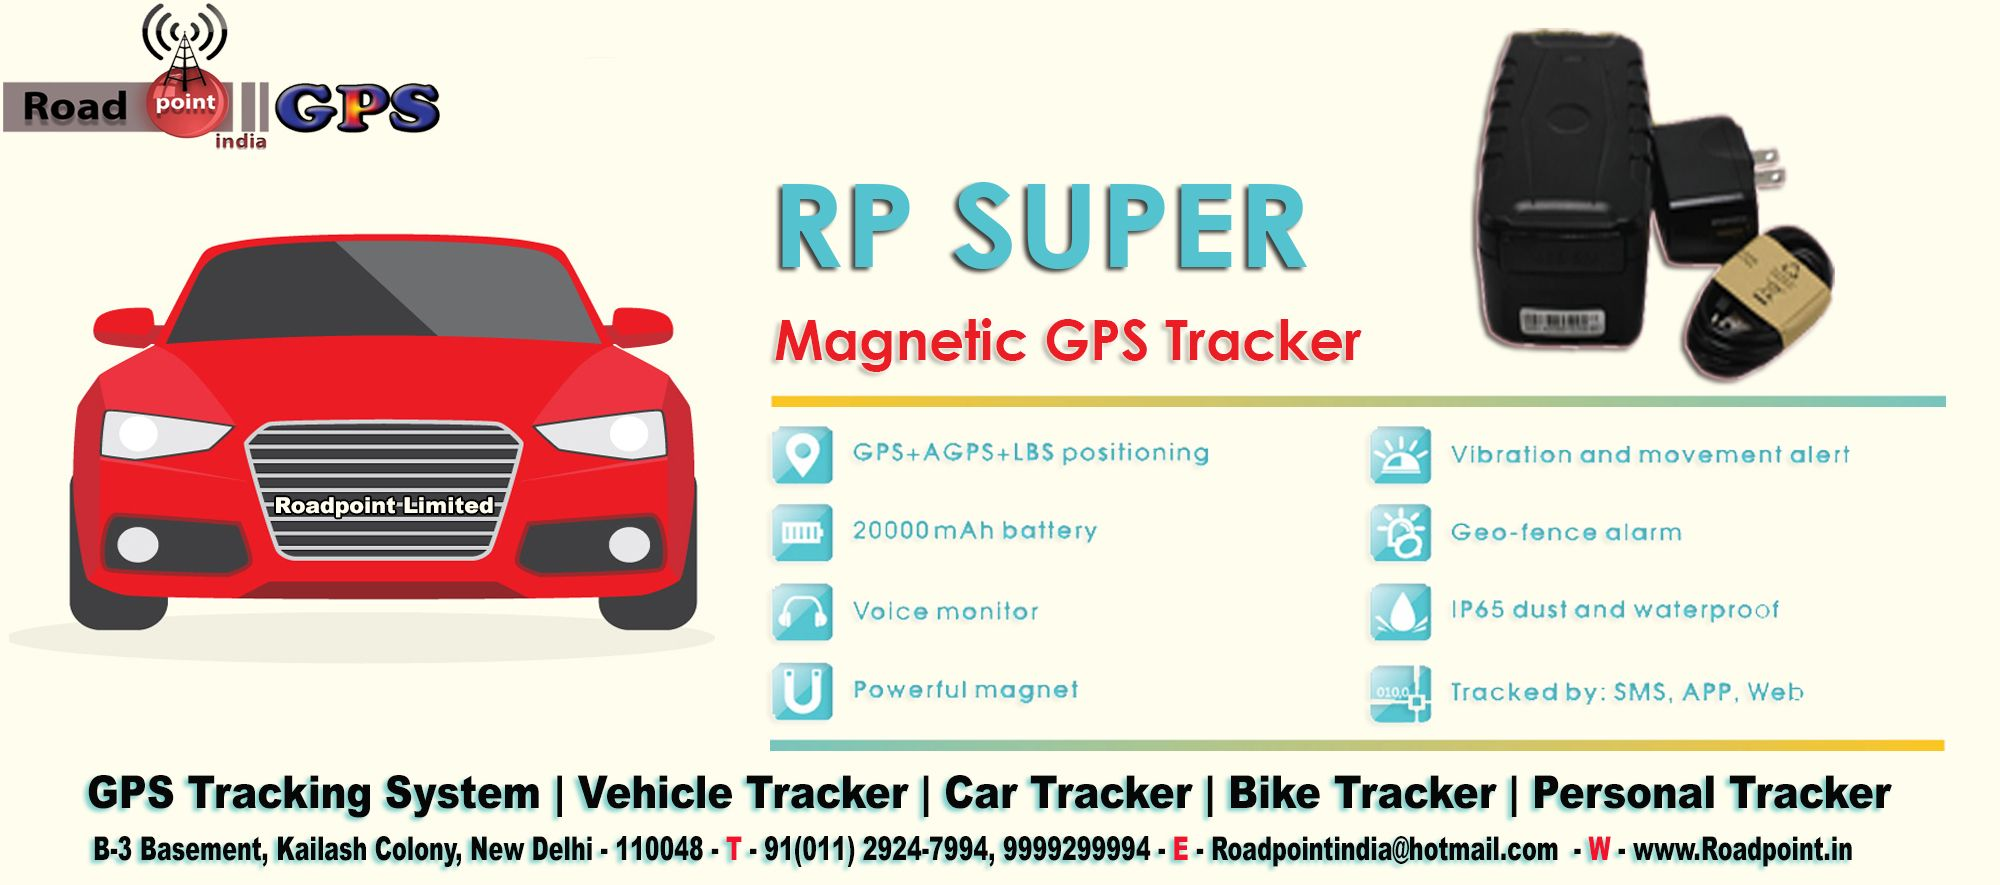 Buy Rp Super Magnetic Gps Tracker And Secure Your Vehicle From All Threats Features